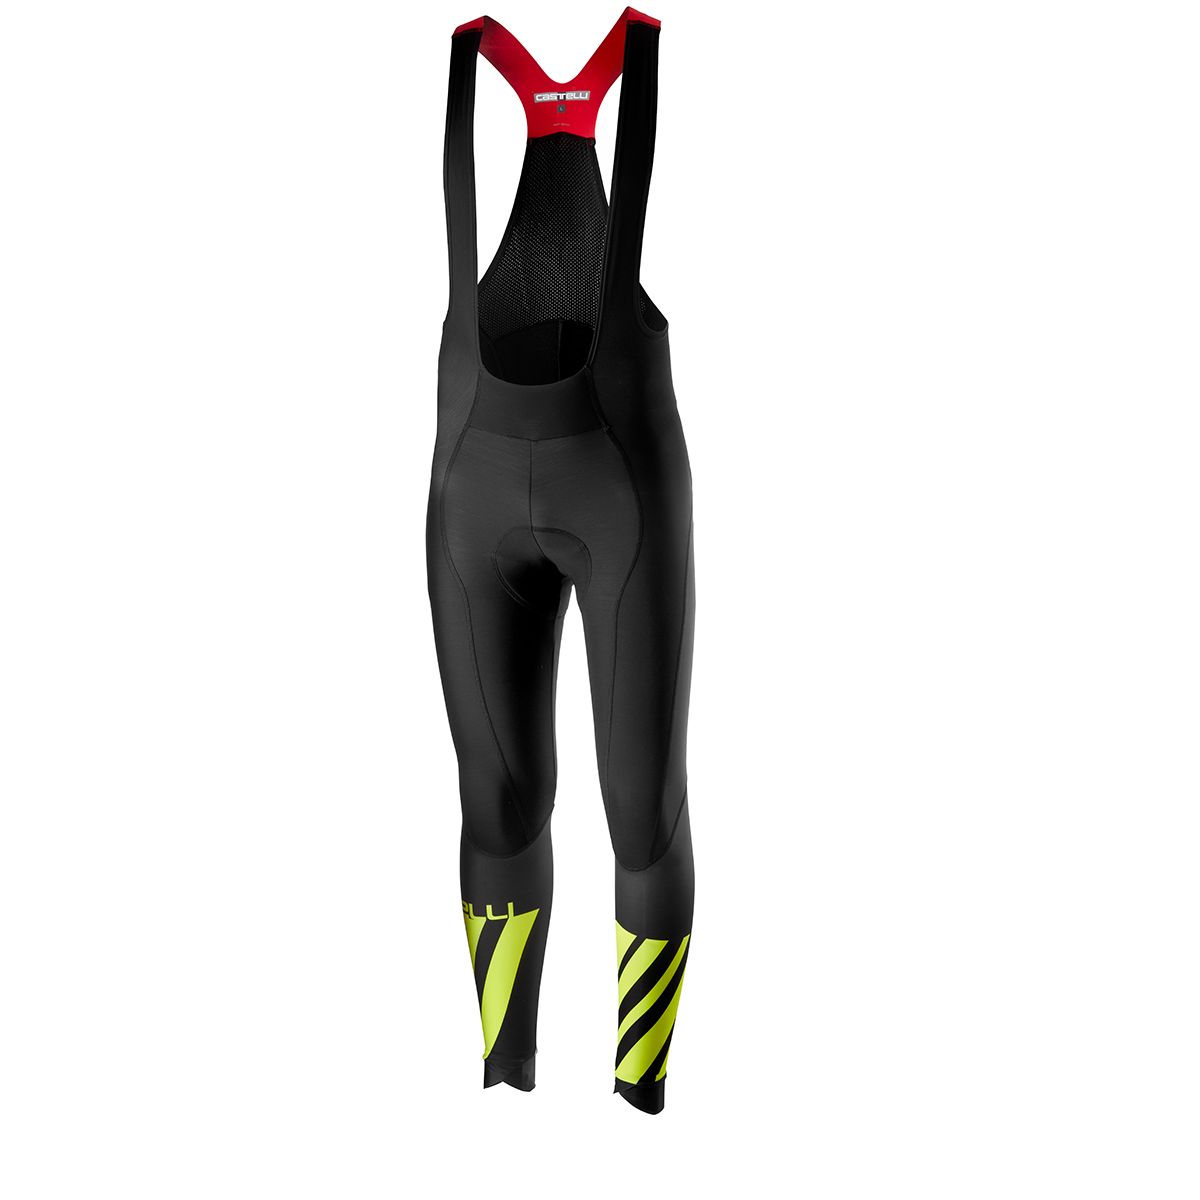 LW BIBTIGHT Herren Thermo Trägerhose